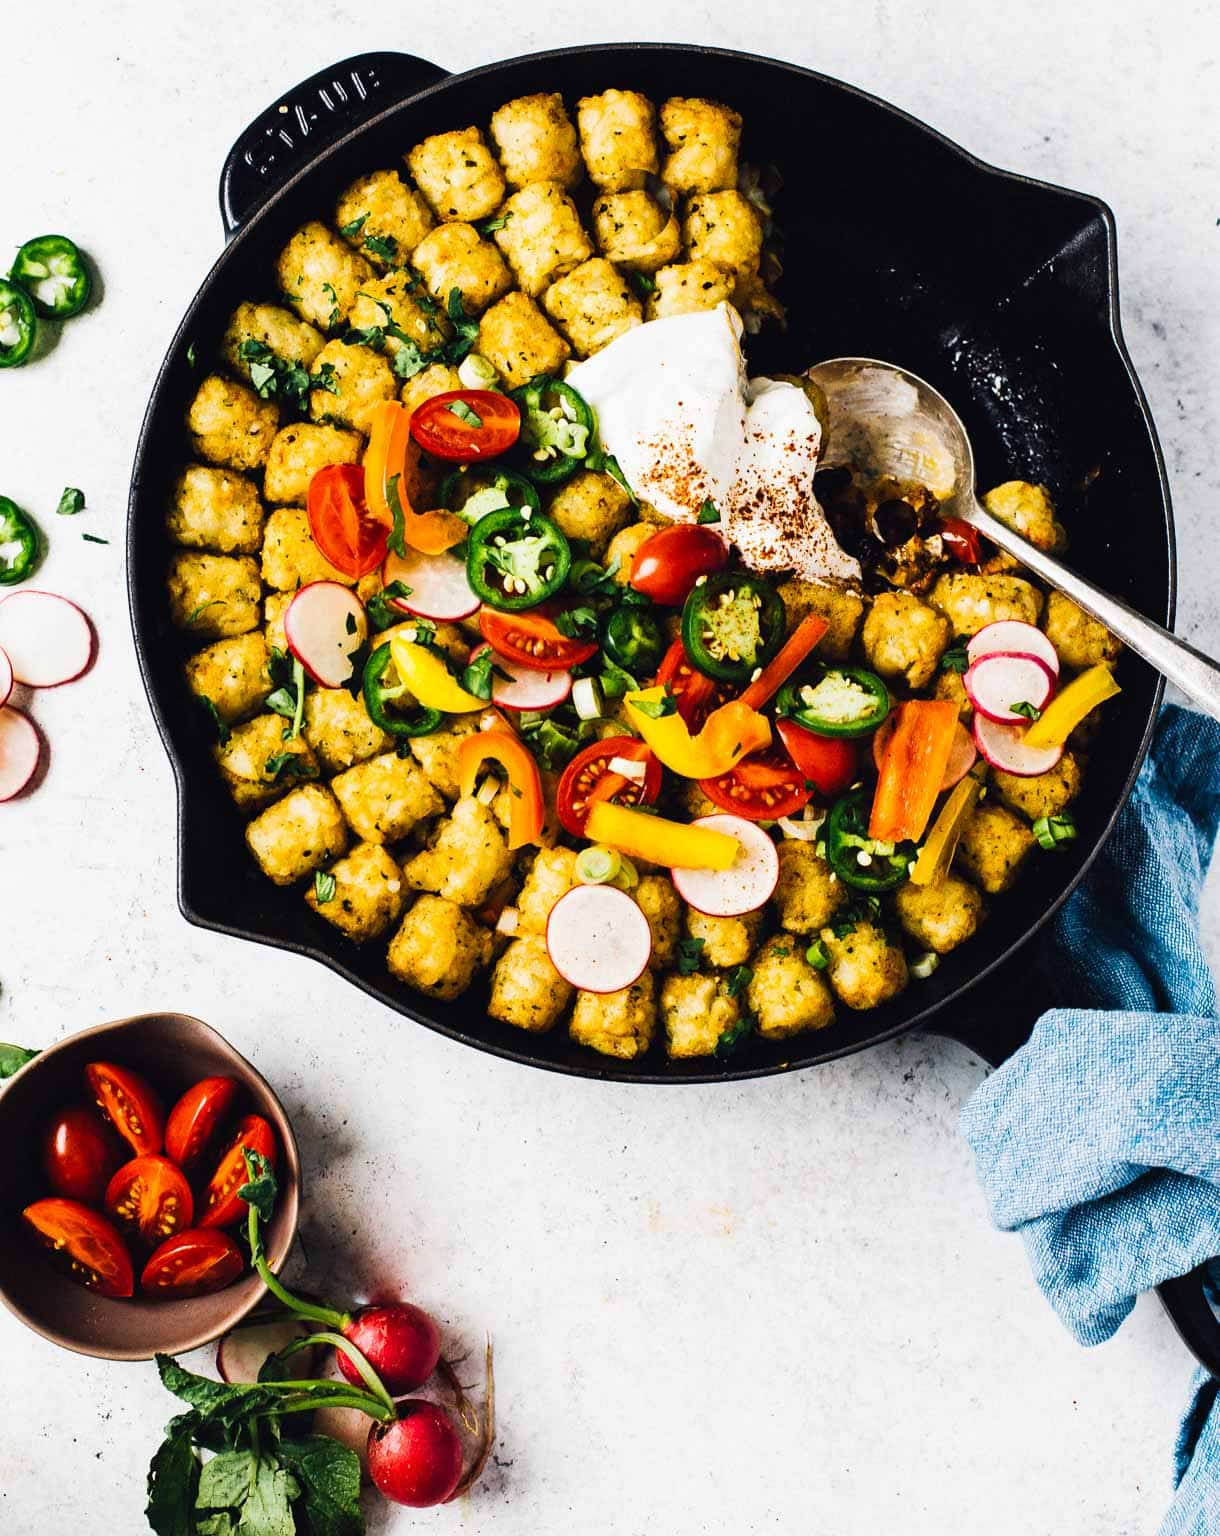 Taco Tater Tot #Hotdish with cheddar cheese slices